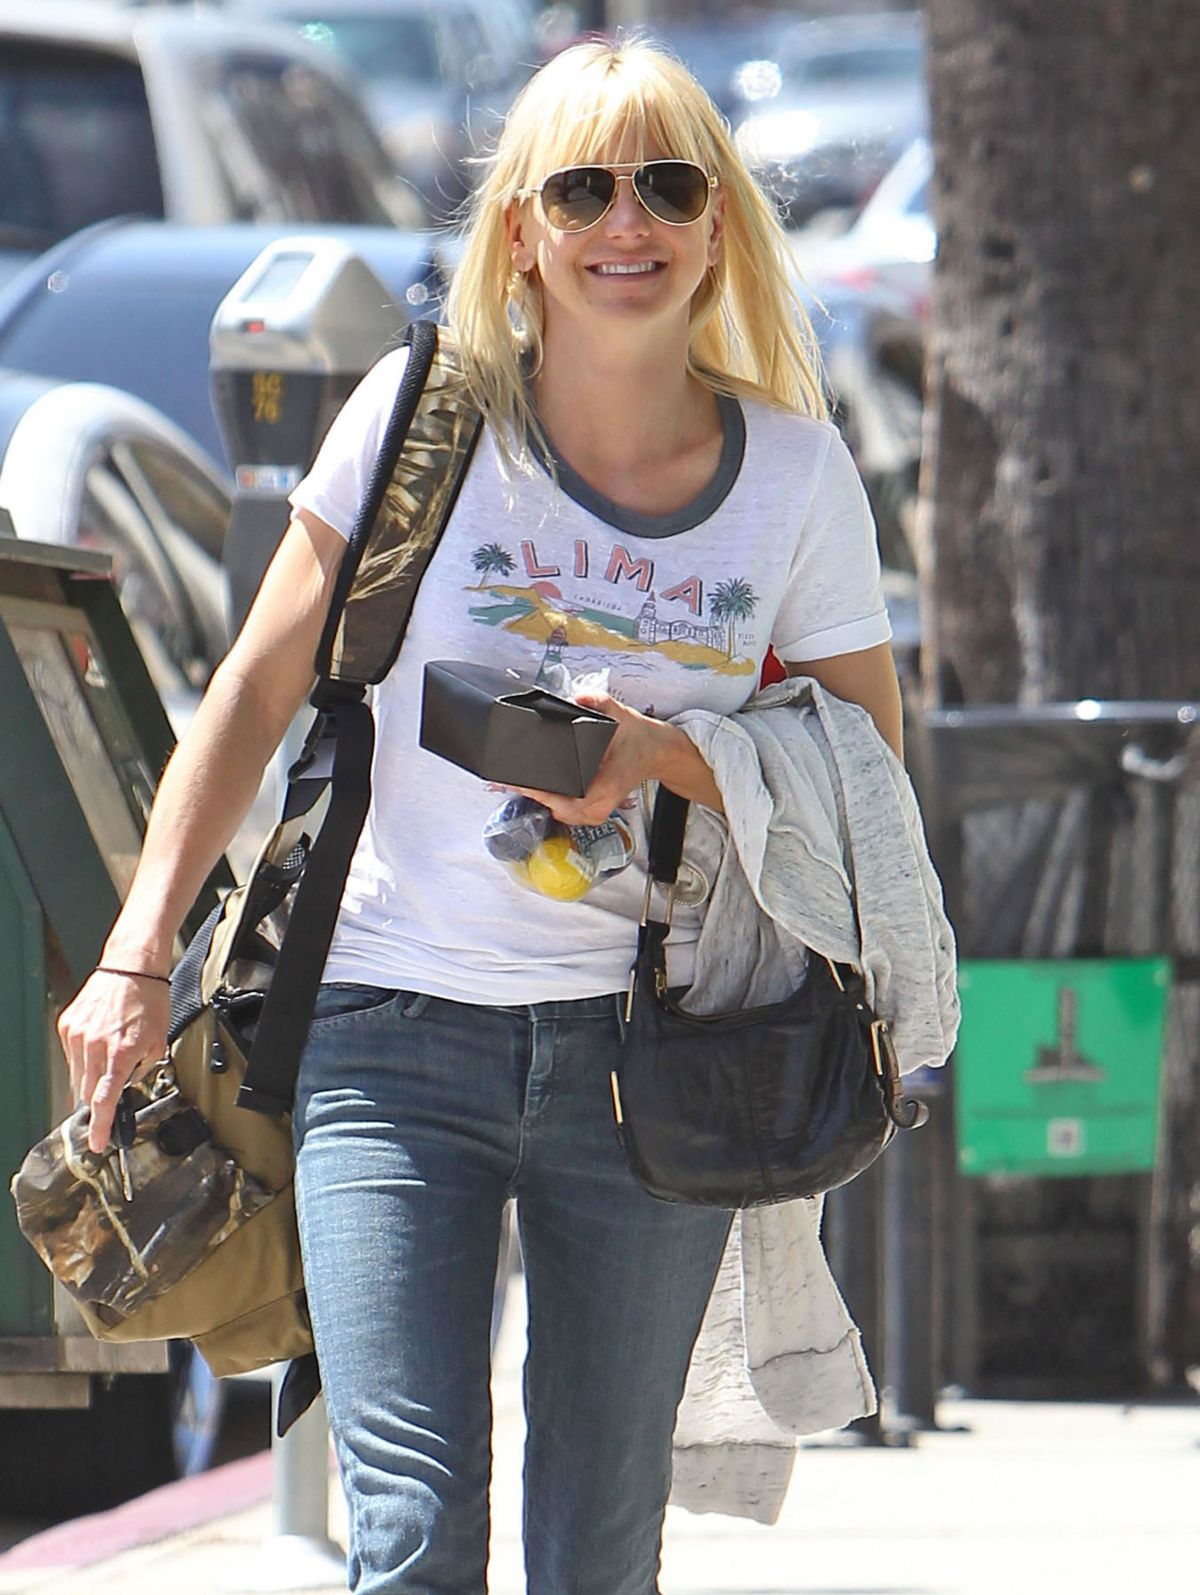 ANNA FARIS in Jeans Out and About in Los Angeles